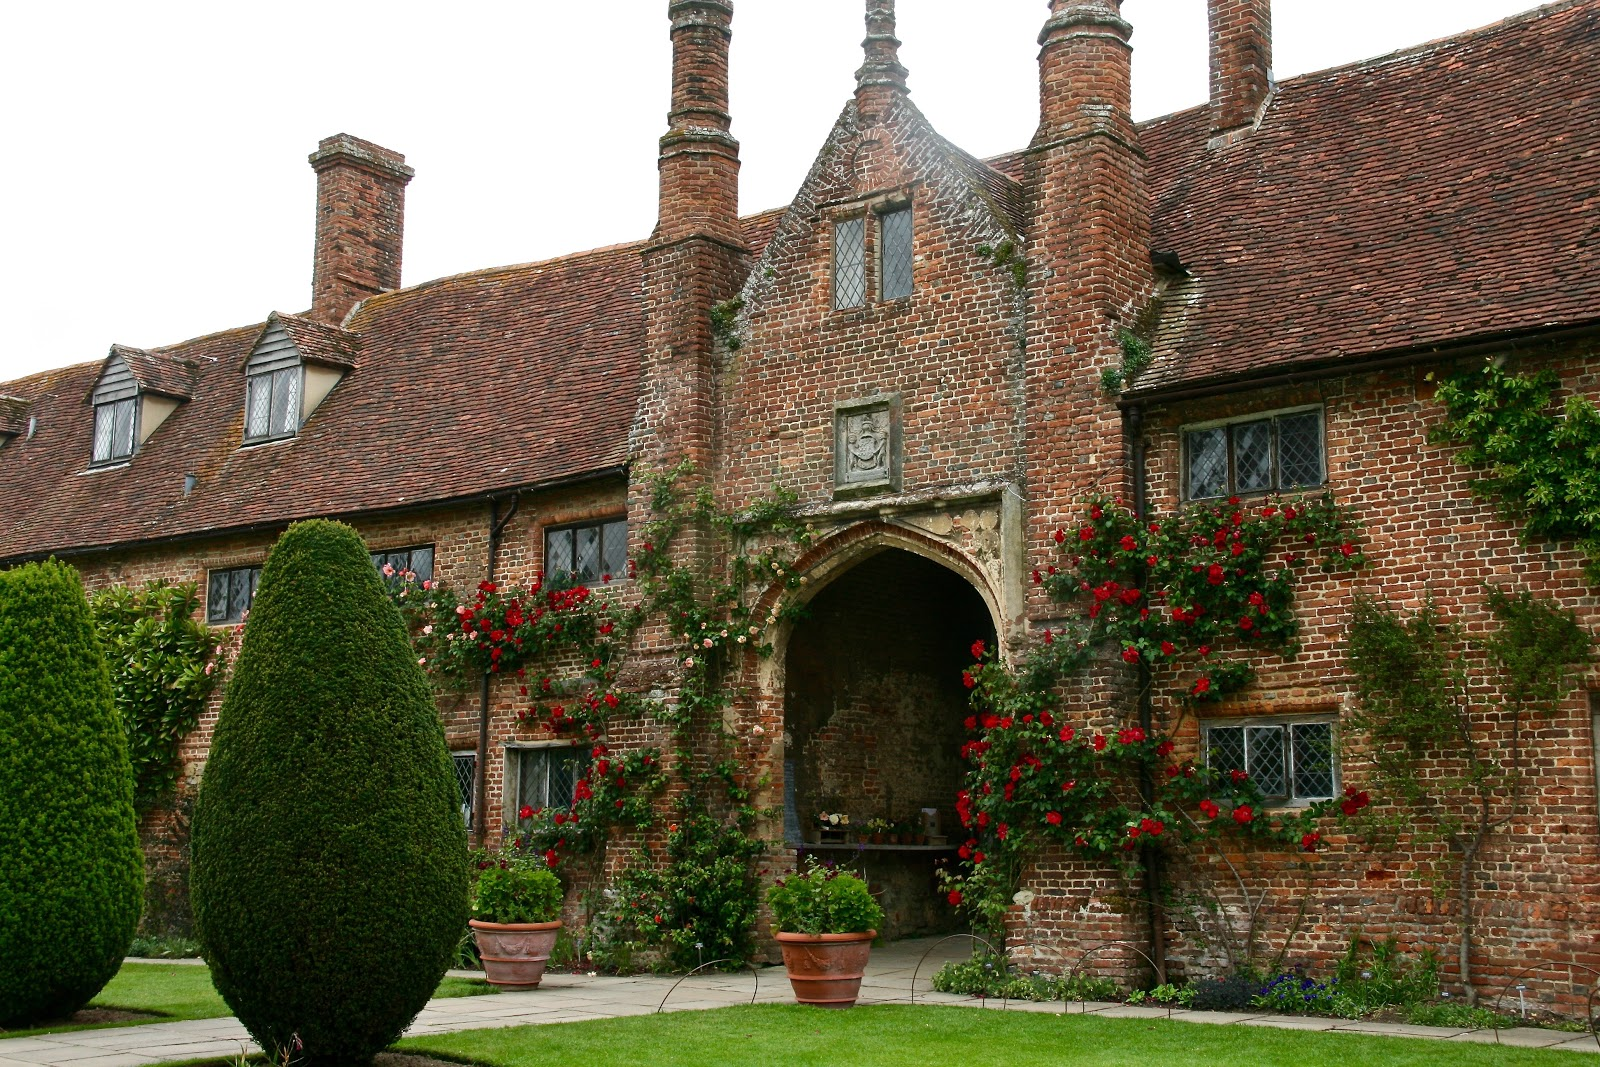 Taking a look at what Vita Sackville-West created at Sissinghurst ...